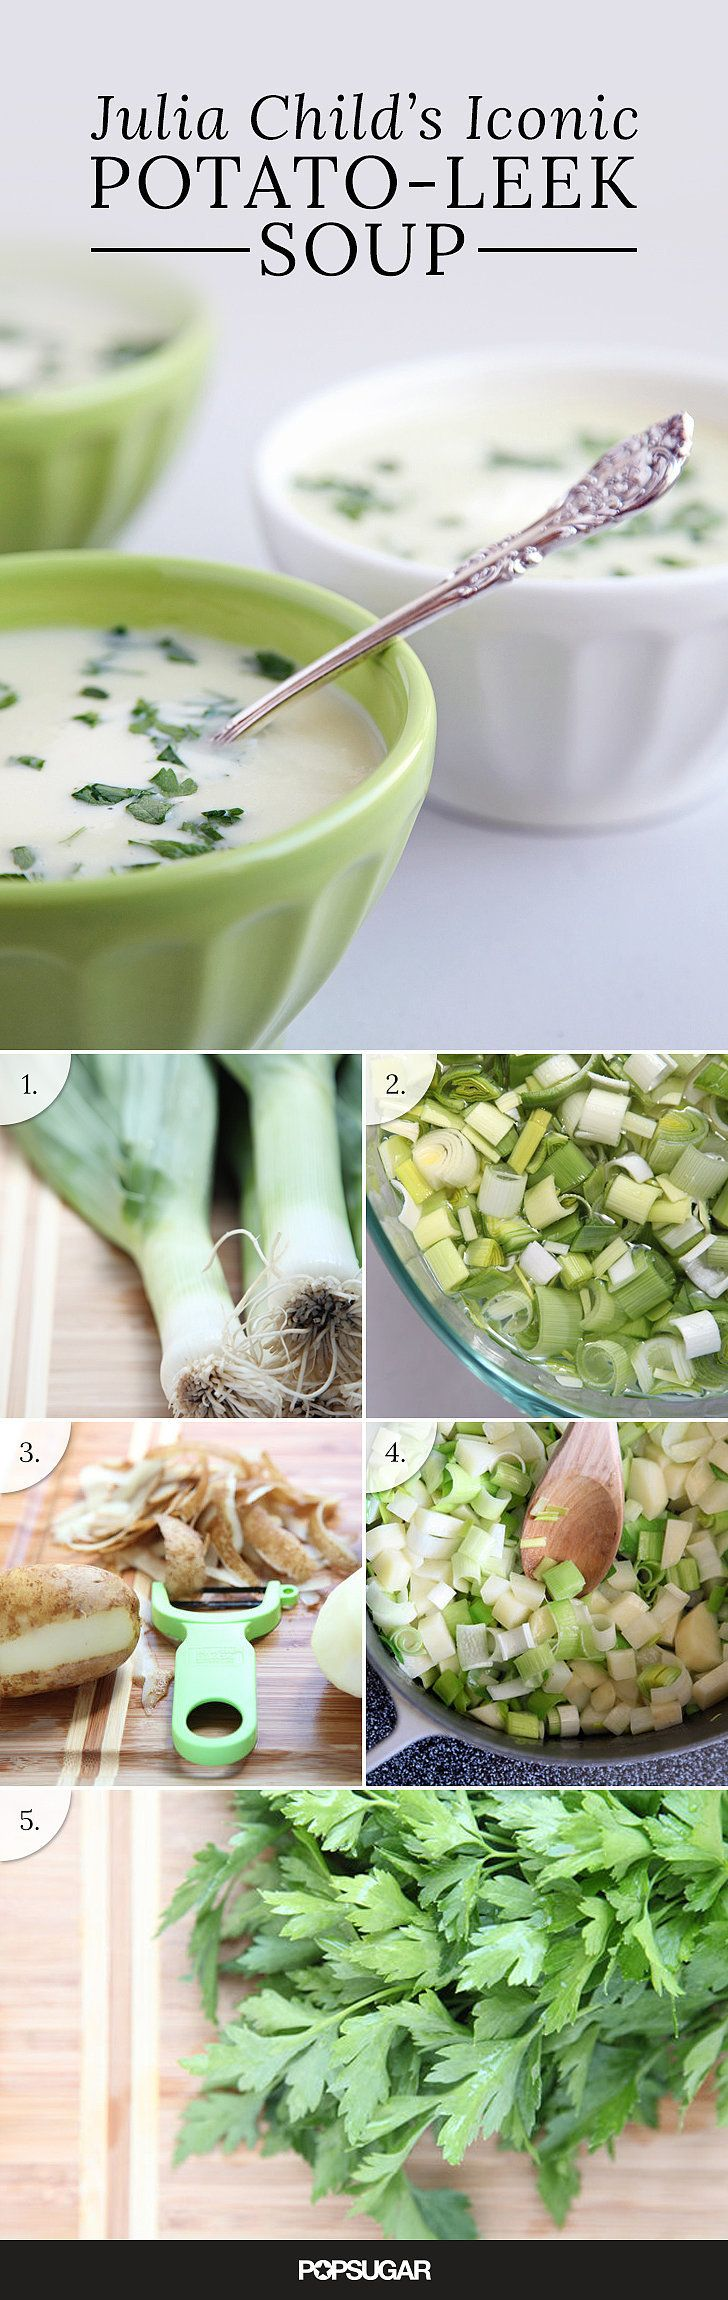 It can be fun to pay homage to the culinary greats, and who better than Julia Child? This potato leek soup would make for an excellent first course for a Julia-themed dinner — or any French meal, for that matter. Follow the recipe and see what all the hype was about.